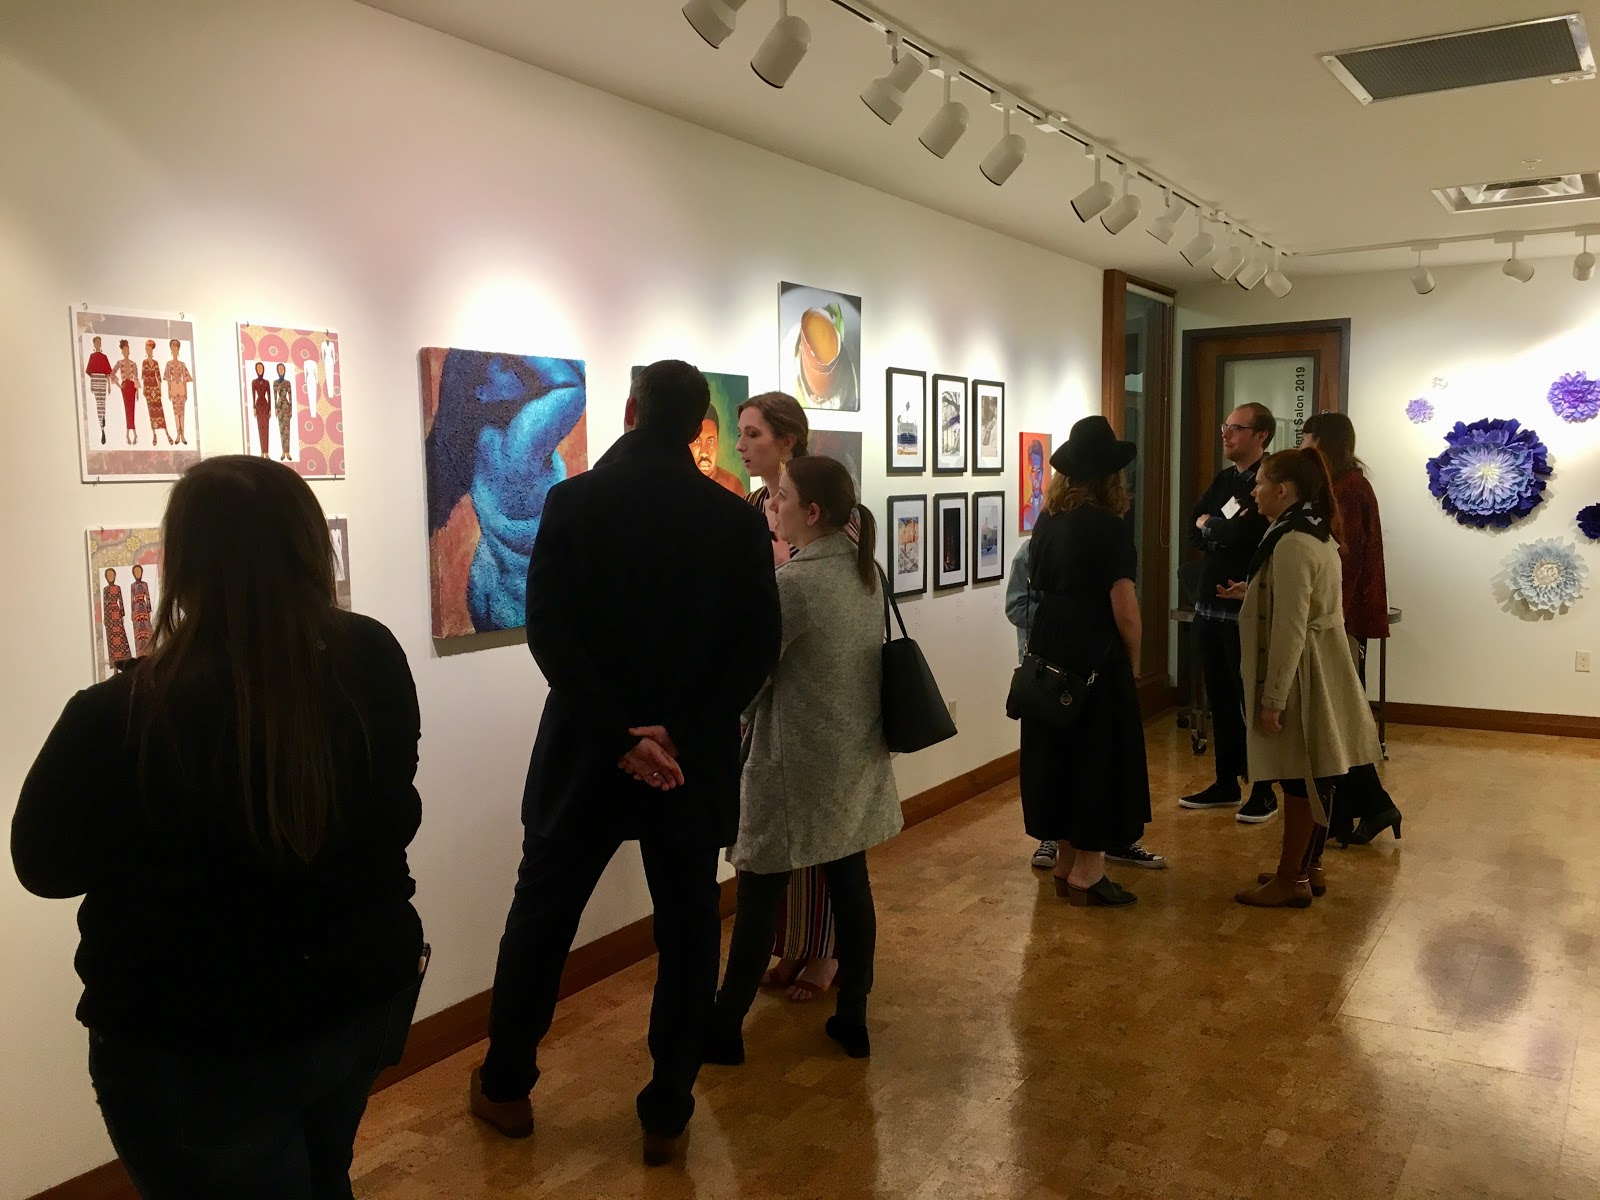 More than 100 people attended the opening night reception of the 2019 Student Salon in the Gordon Parks Gallery on March 21. The show features the work of seven studio arts majors and two individualized studies majors. (Photo by Kathryn Ganfield / The Metropolitan)